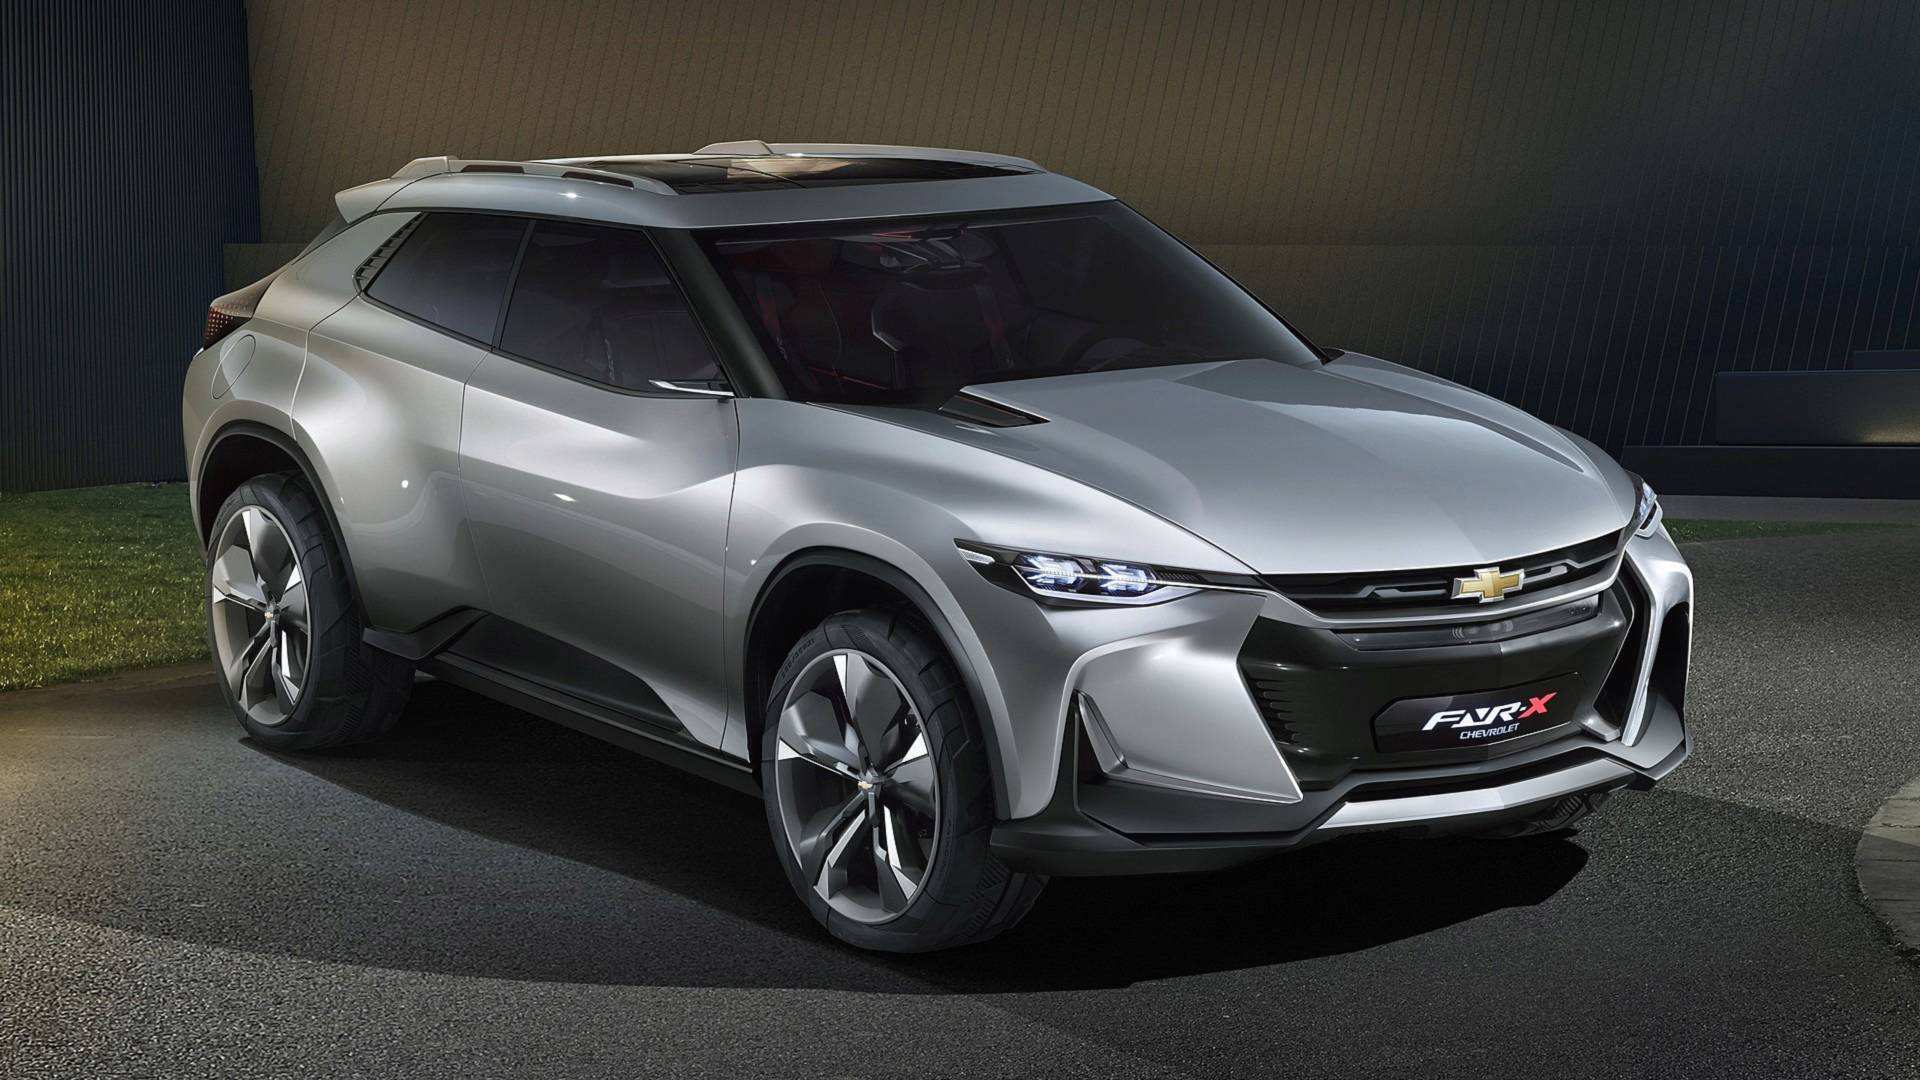 45 Best Chevrolet Lineup For 2020 Spy Shoot